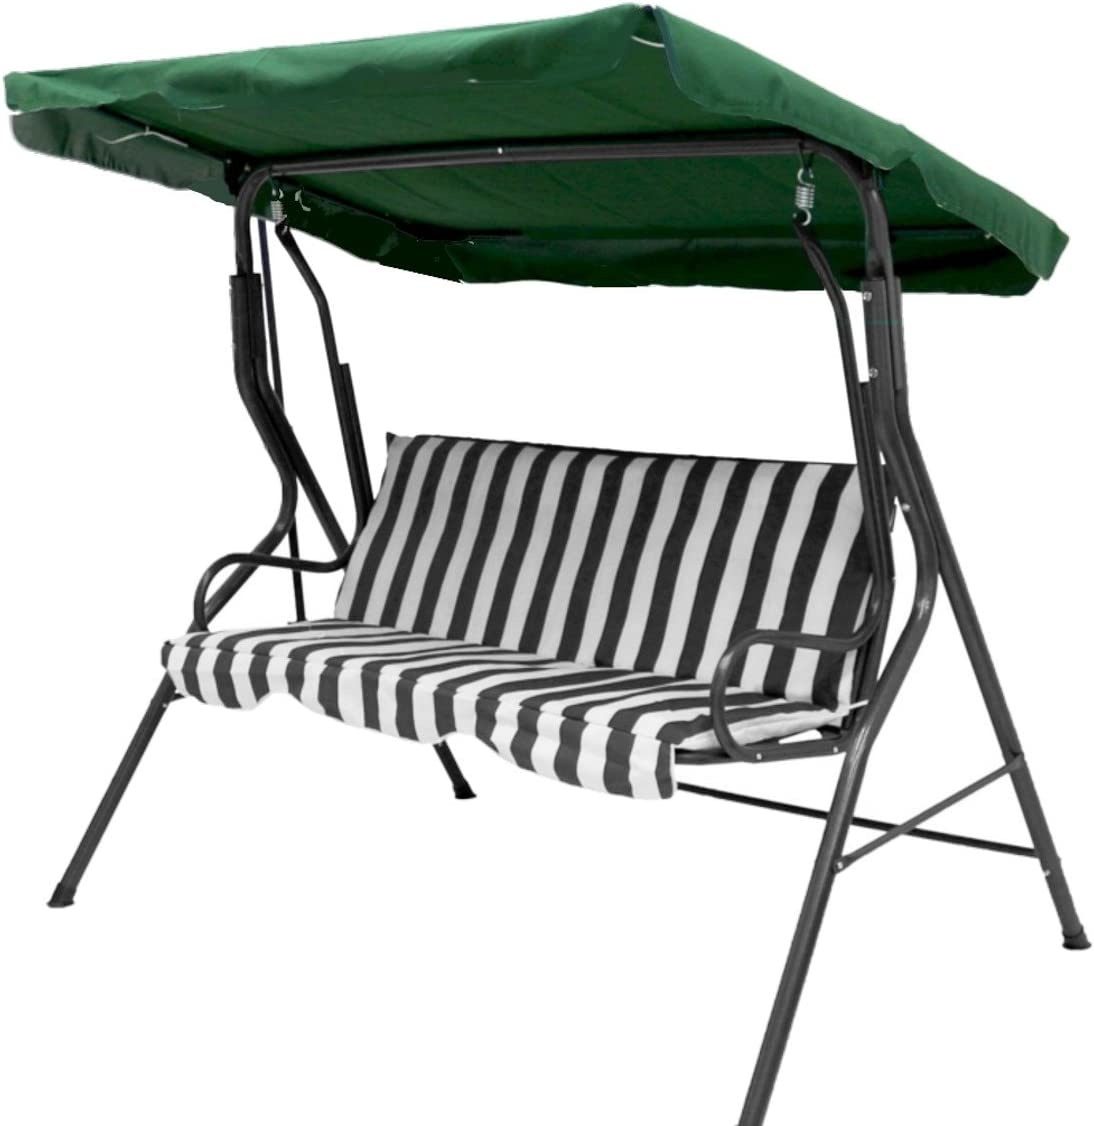 LUNAH Garden Swing Canopy Replacement Patio Swing Top Cover Balcony Hammock Chair Canopy Waterproof UV Block Sun Shade Awning for Outdoor Garden Seat Furniture